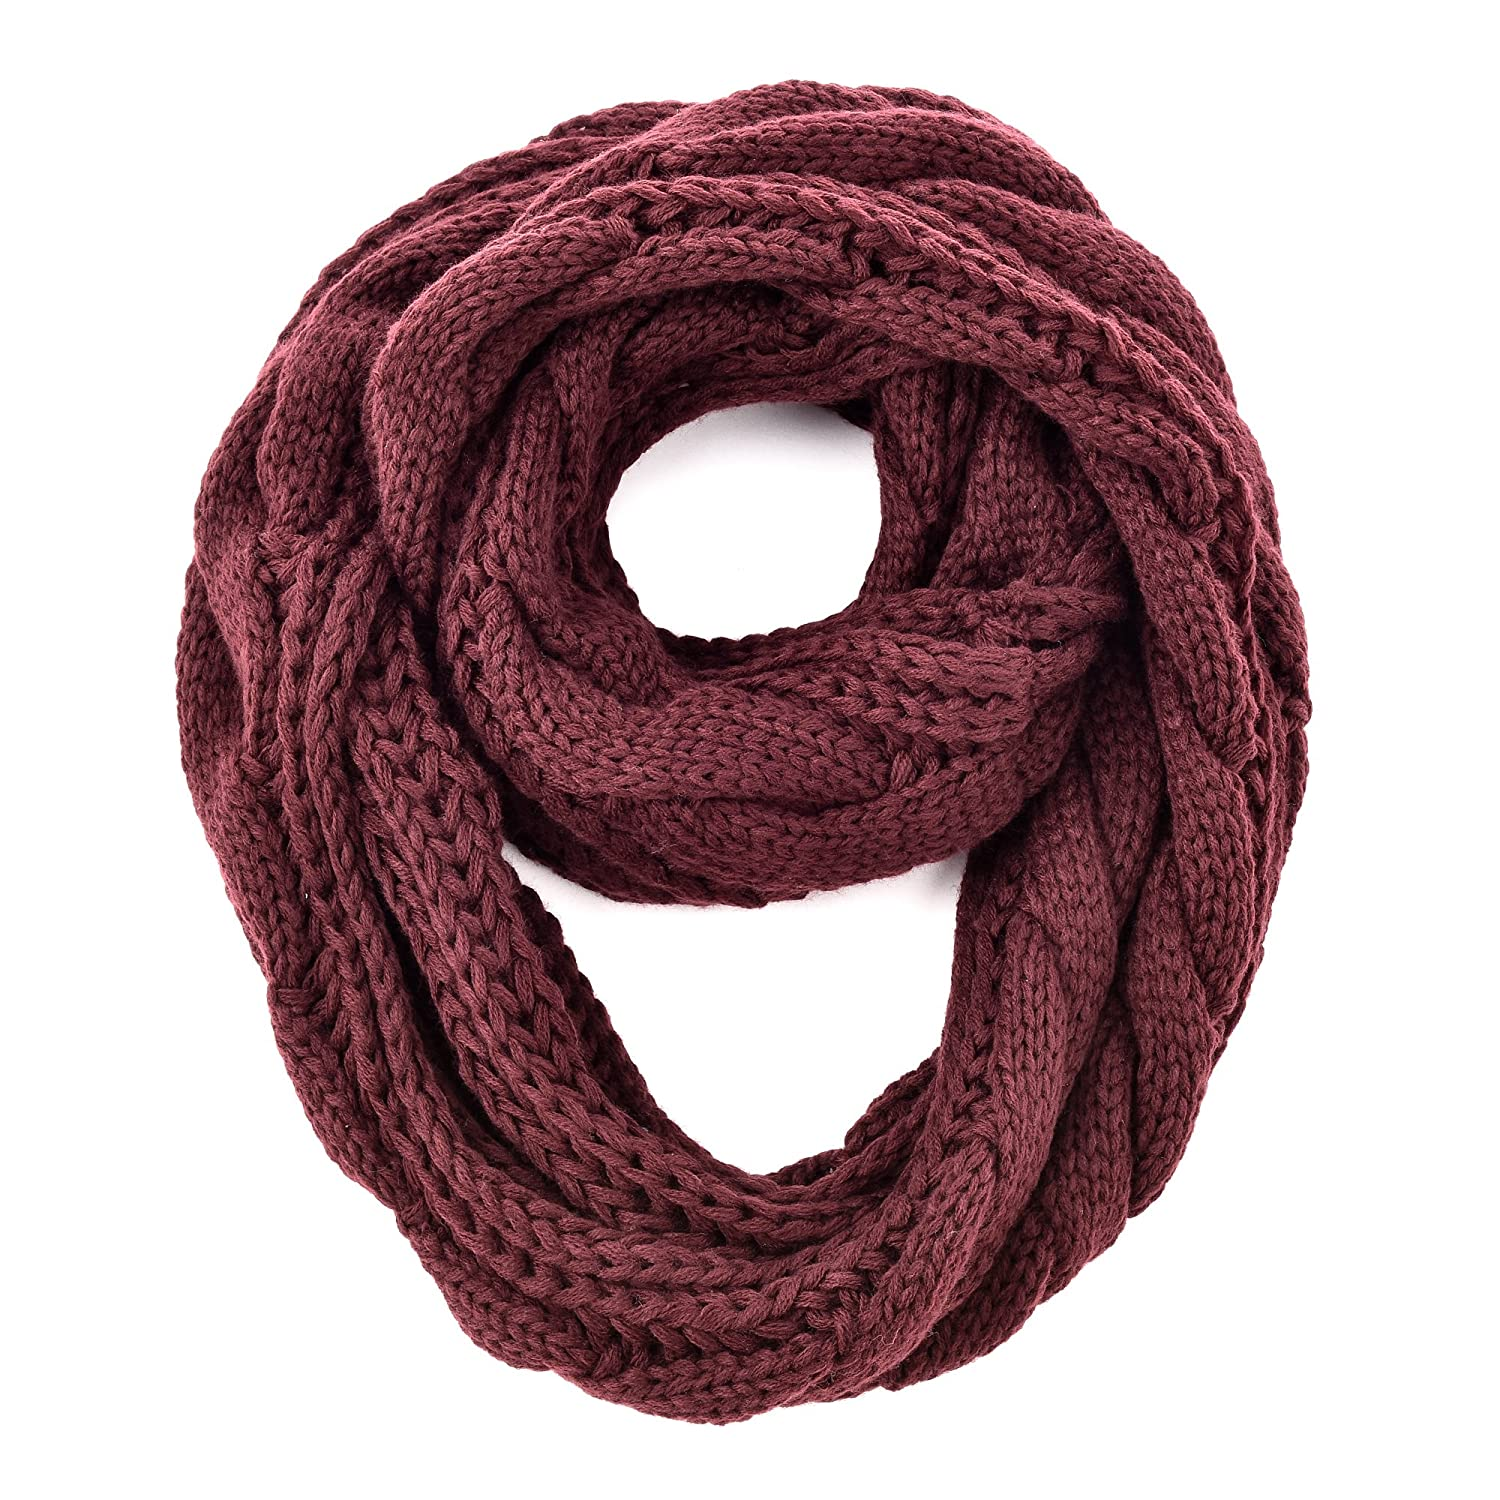 RiscaWin Women Knit Winter Infinity Scarf Warm Thick Neckerchief Circle Loop (Black)